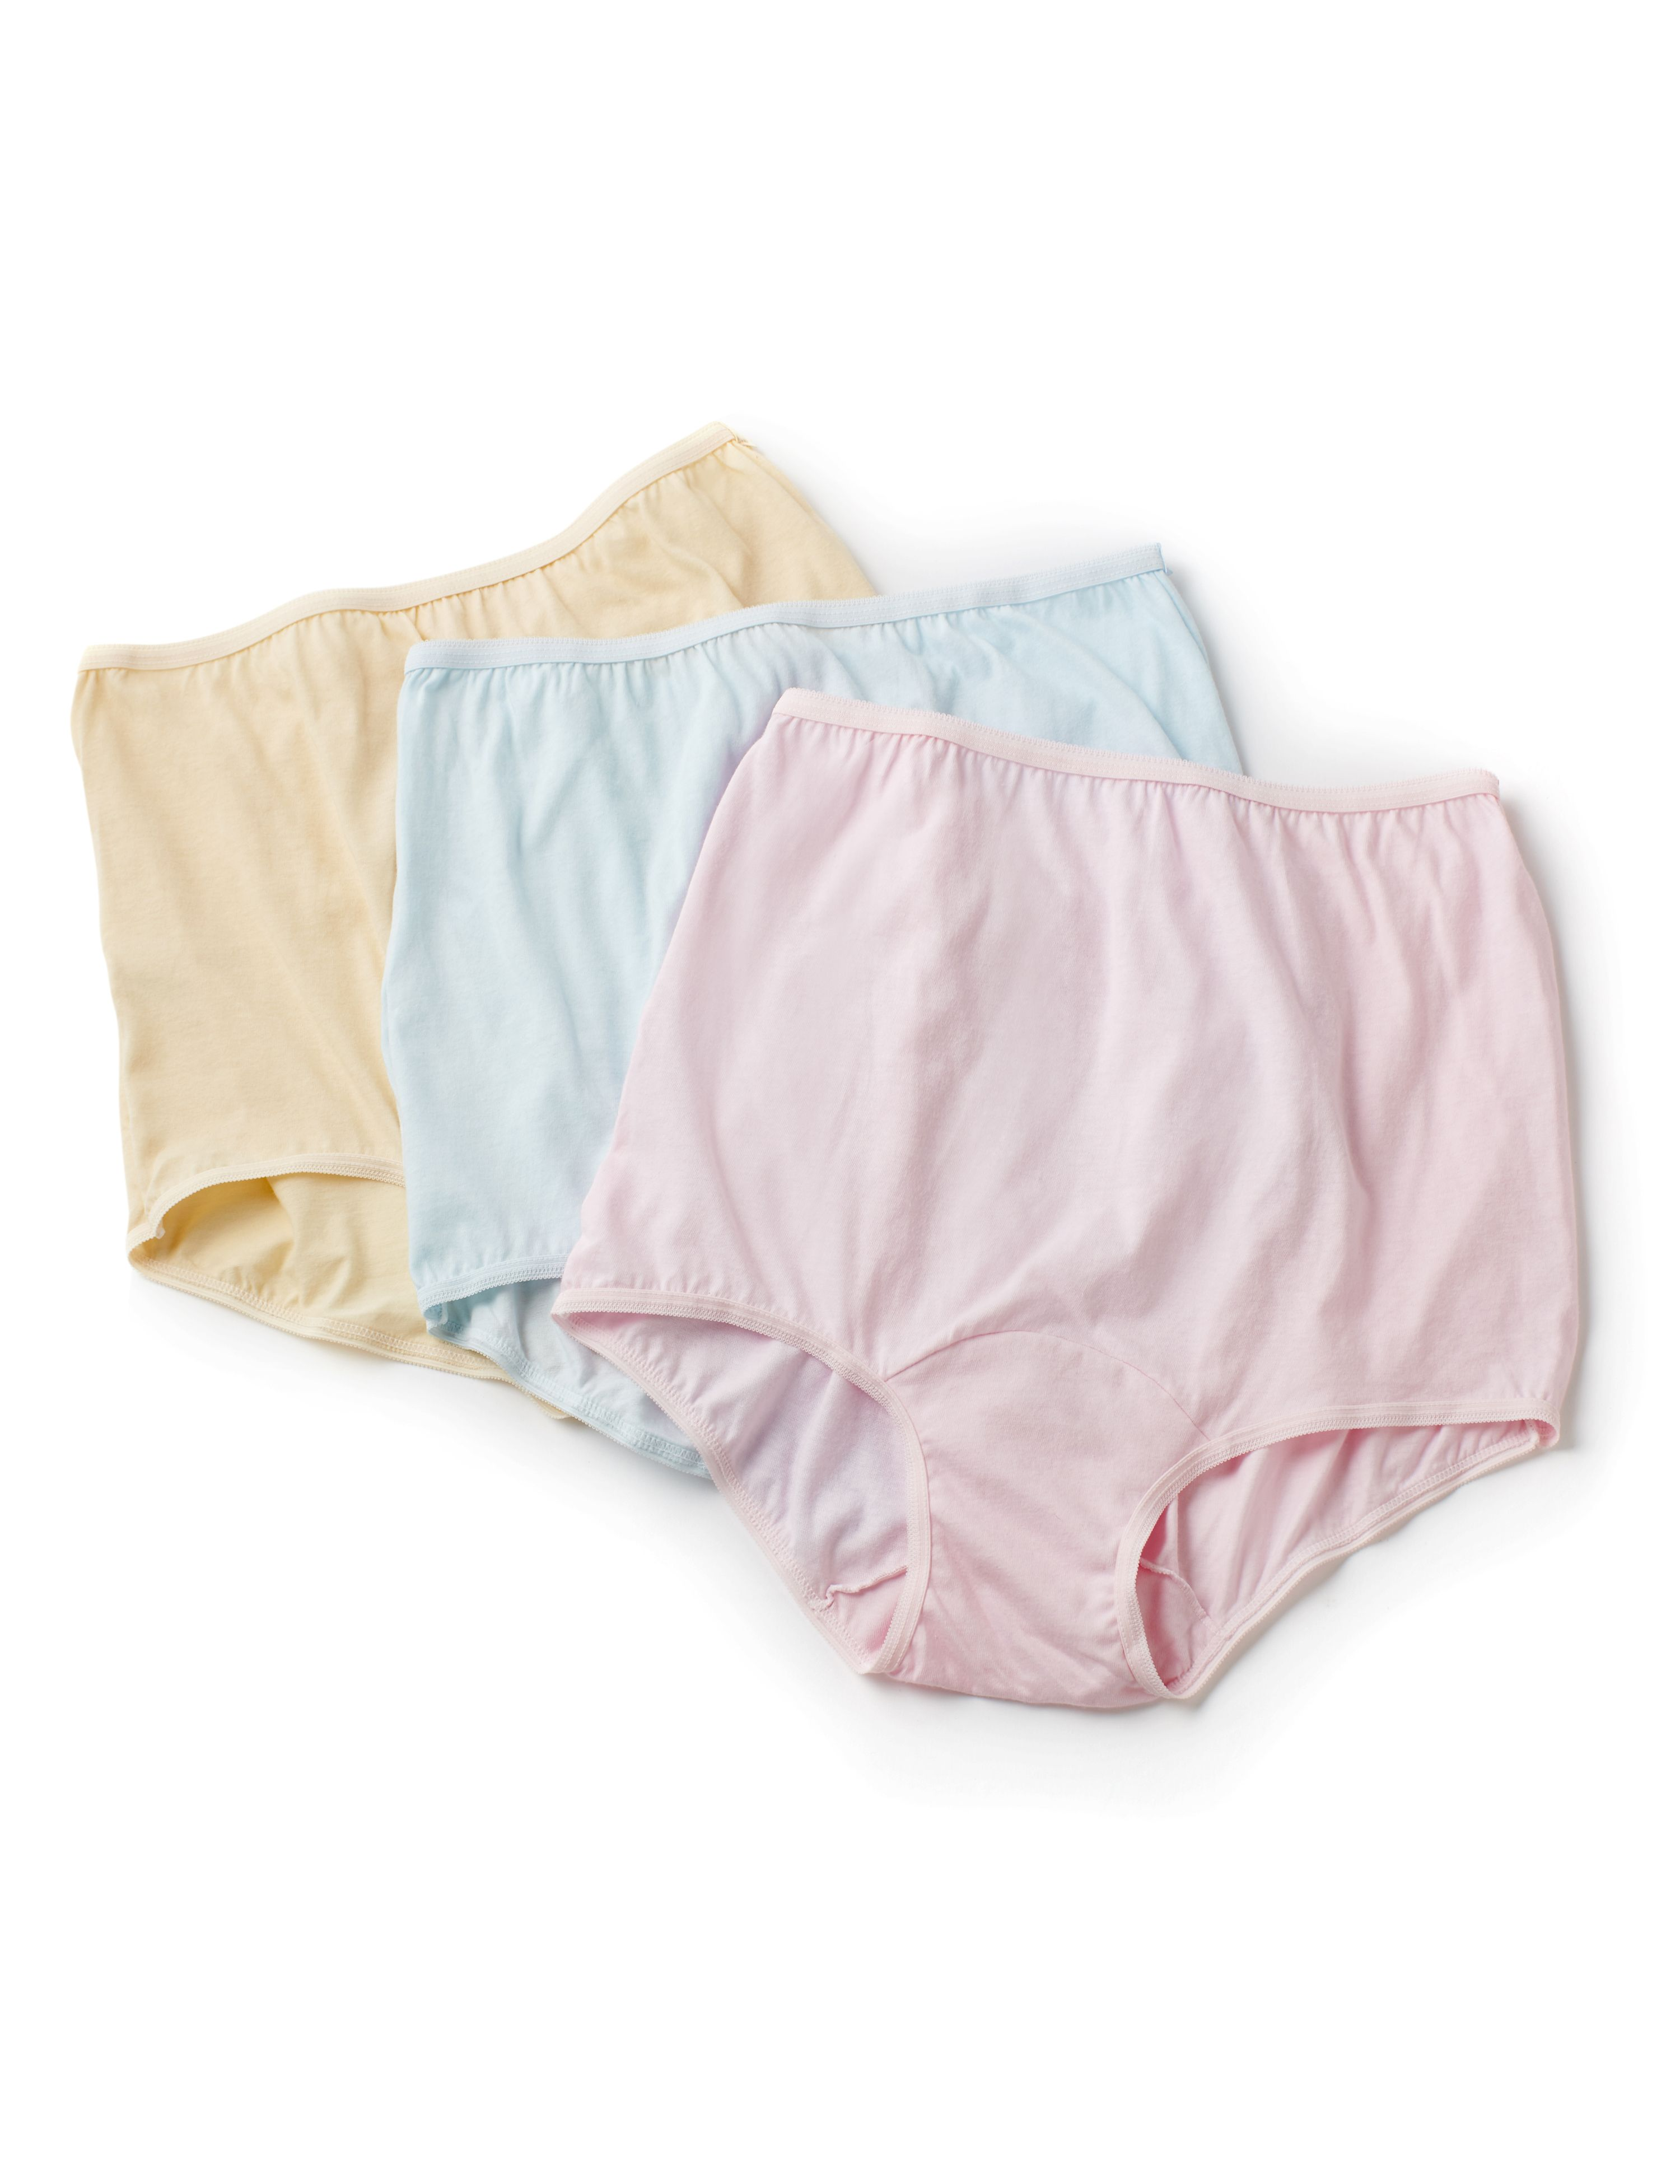 3-Pack Cotton Panties 3-Pack Cotton Panties MP-200103839